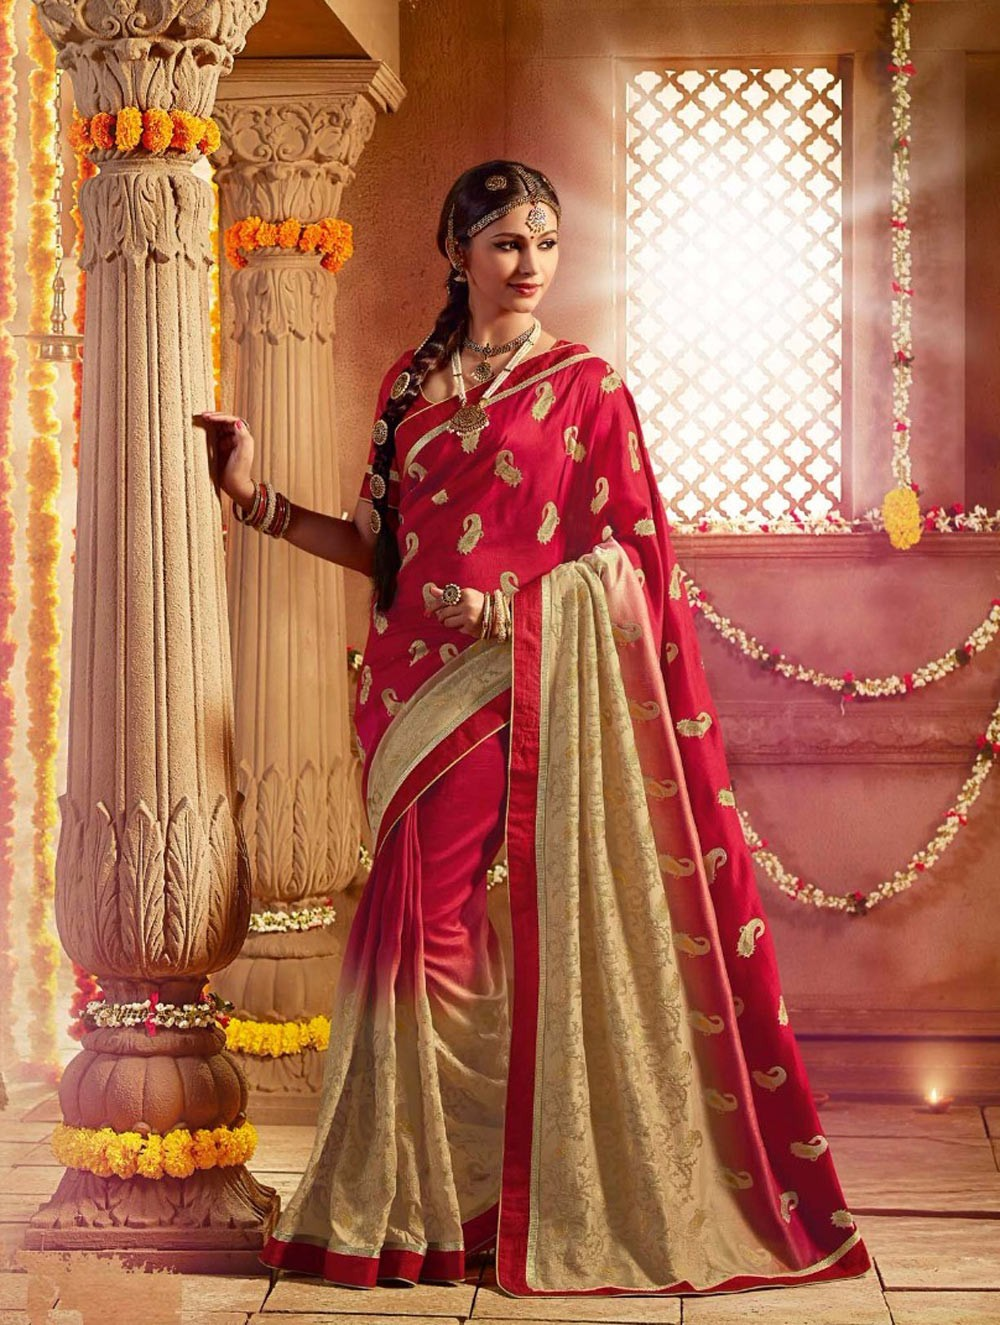 The model in South Indian designed silk saree.